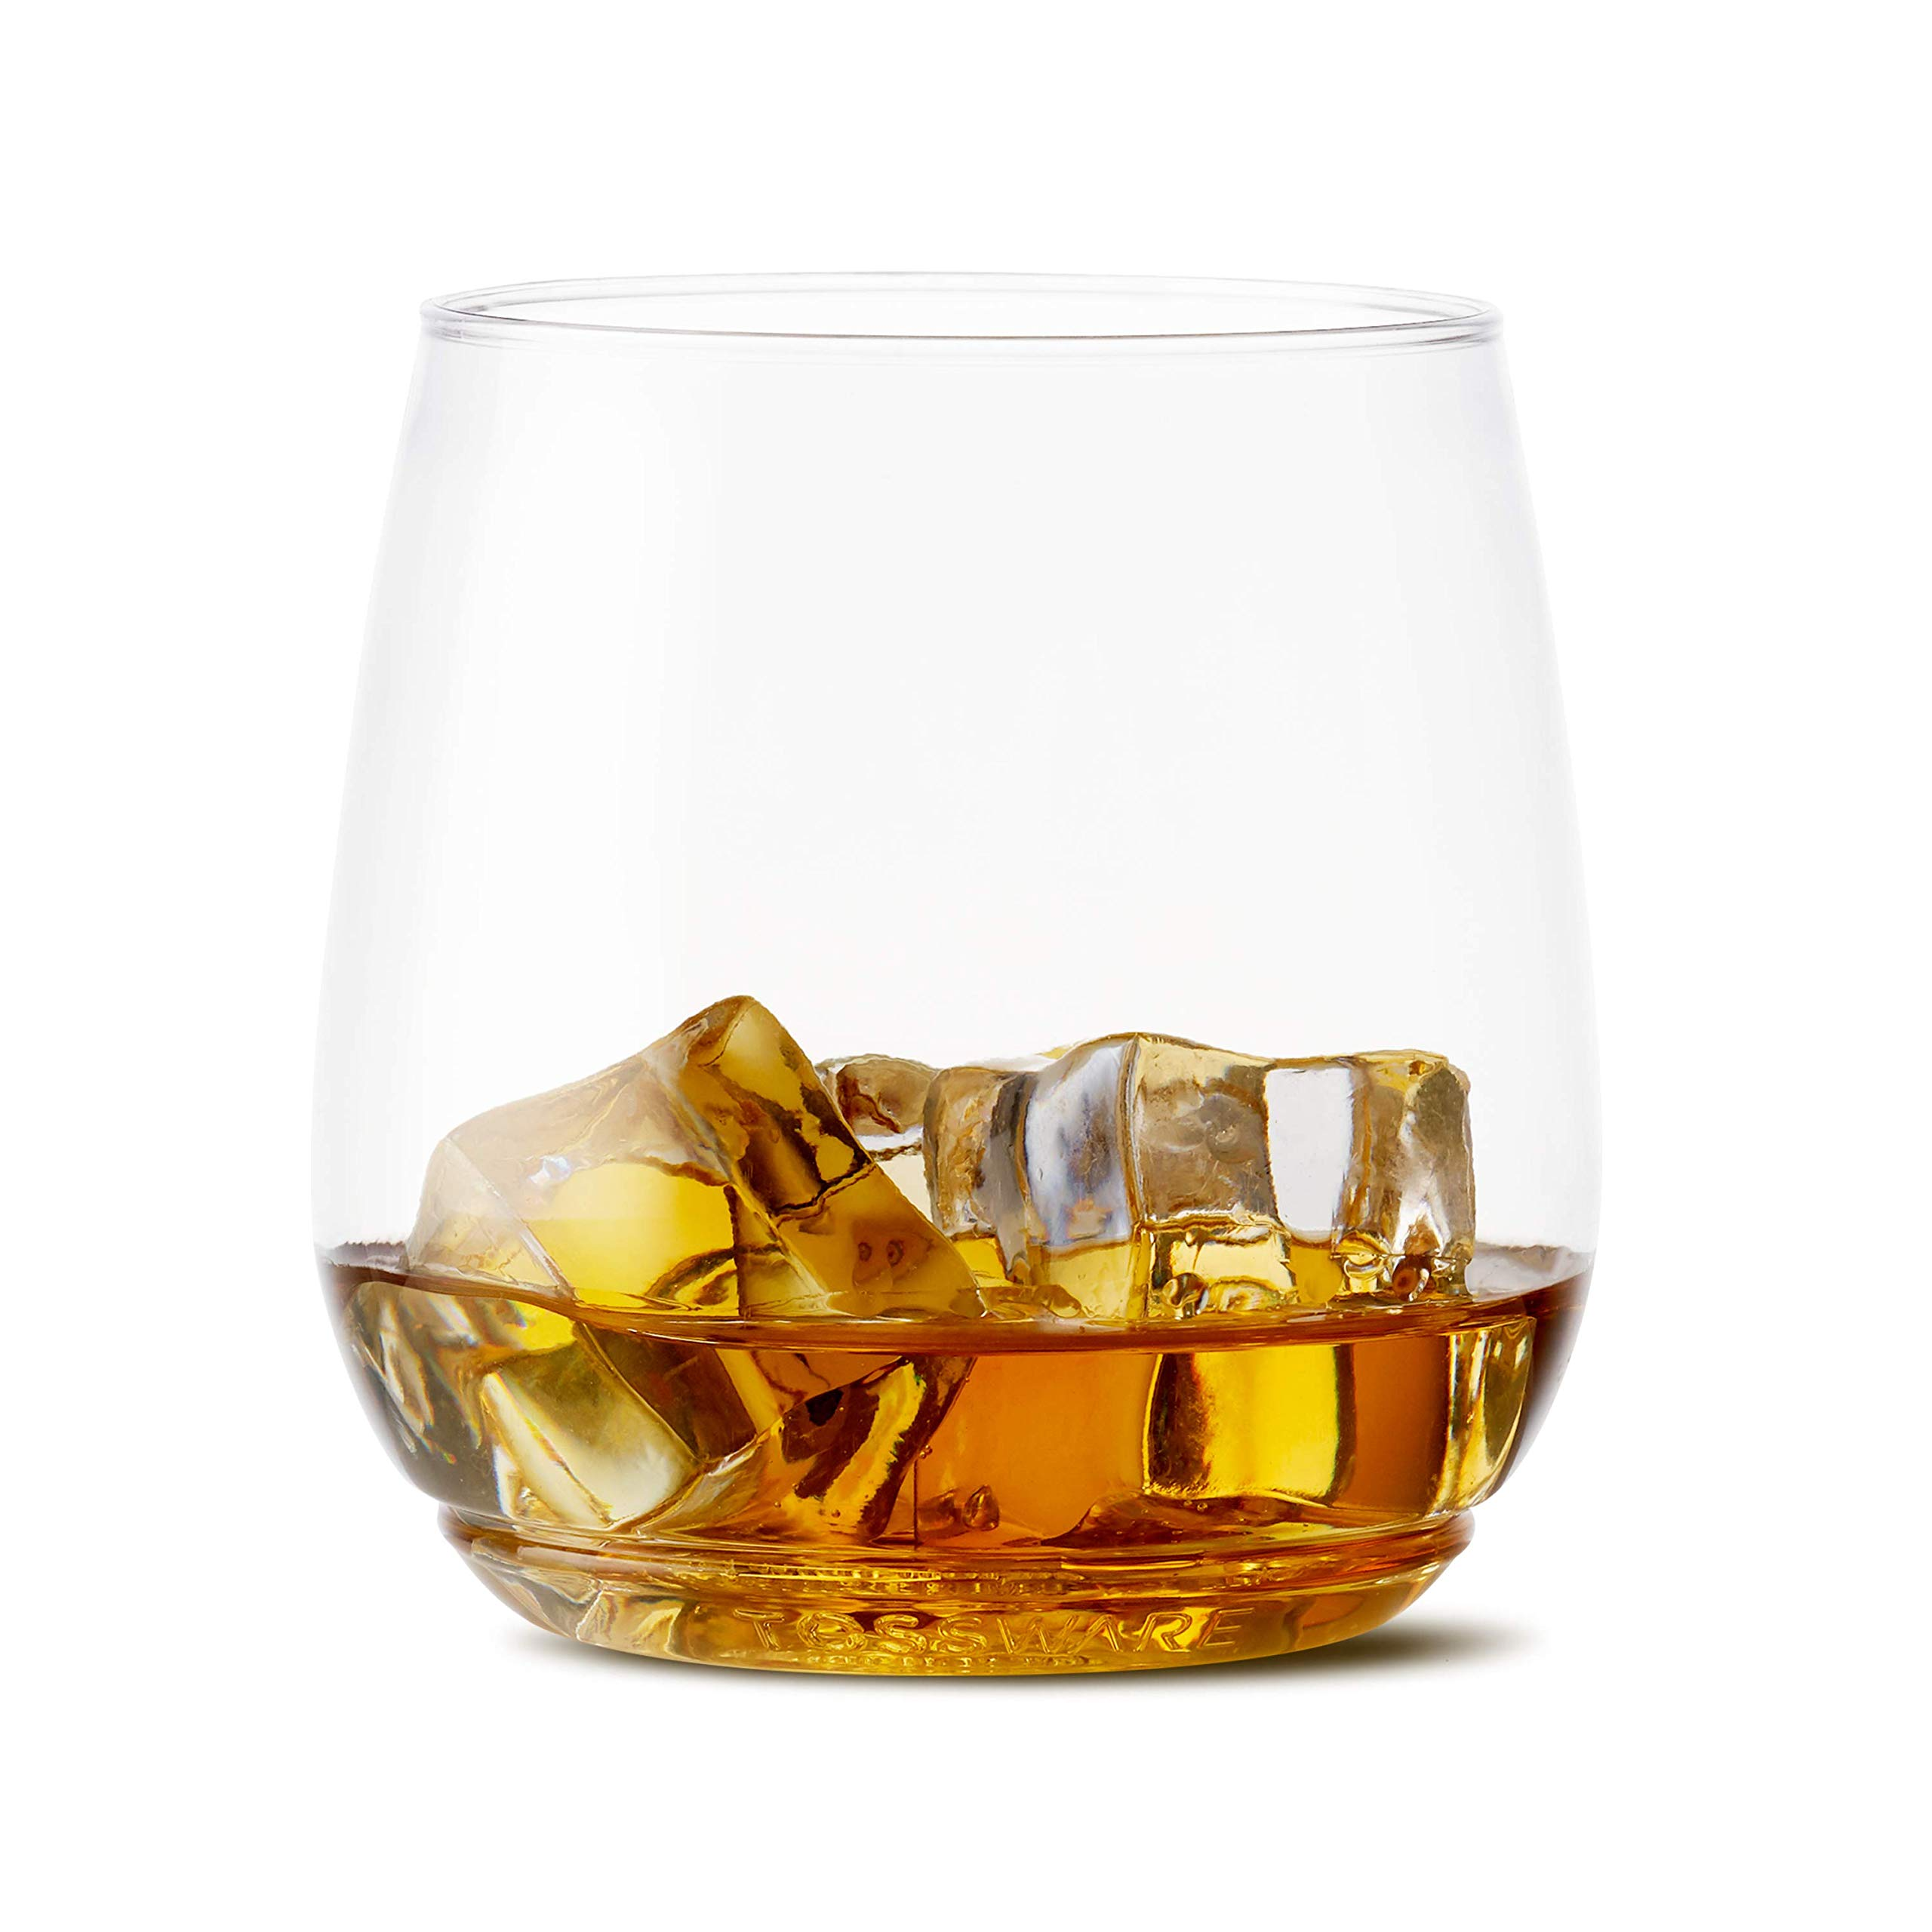 TOSSWARE 12oz Tumbler Jr - Set of 252 recyclable cocktail and whiskey plastic cup - stemless, shatterproof and BPA-free, Clear Glass by TOSSWARE (Image #2)